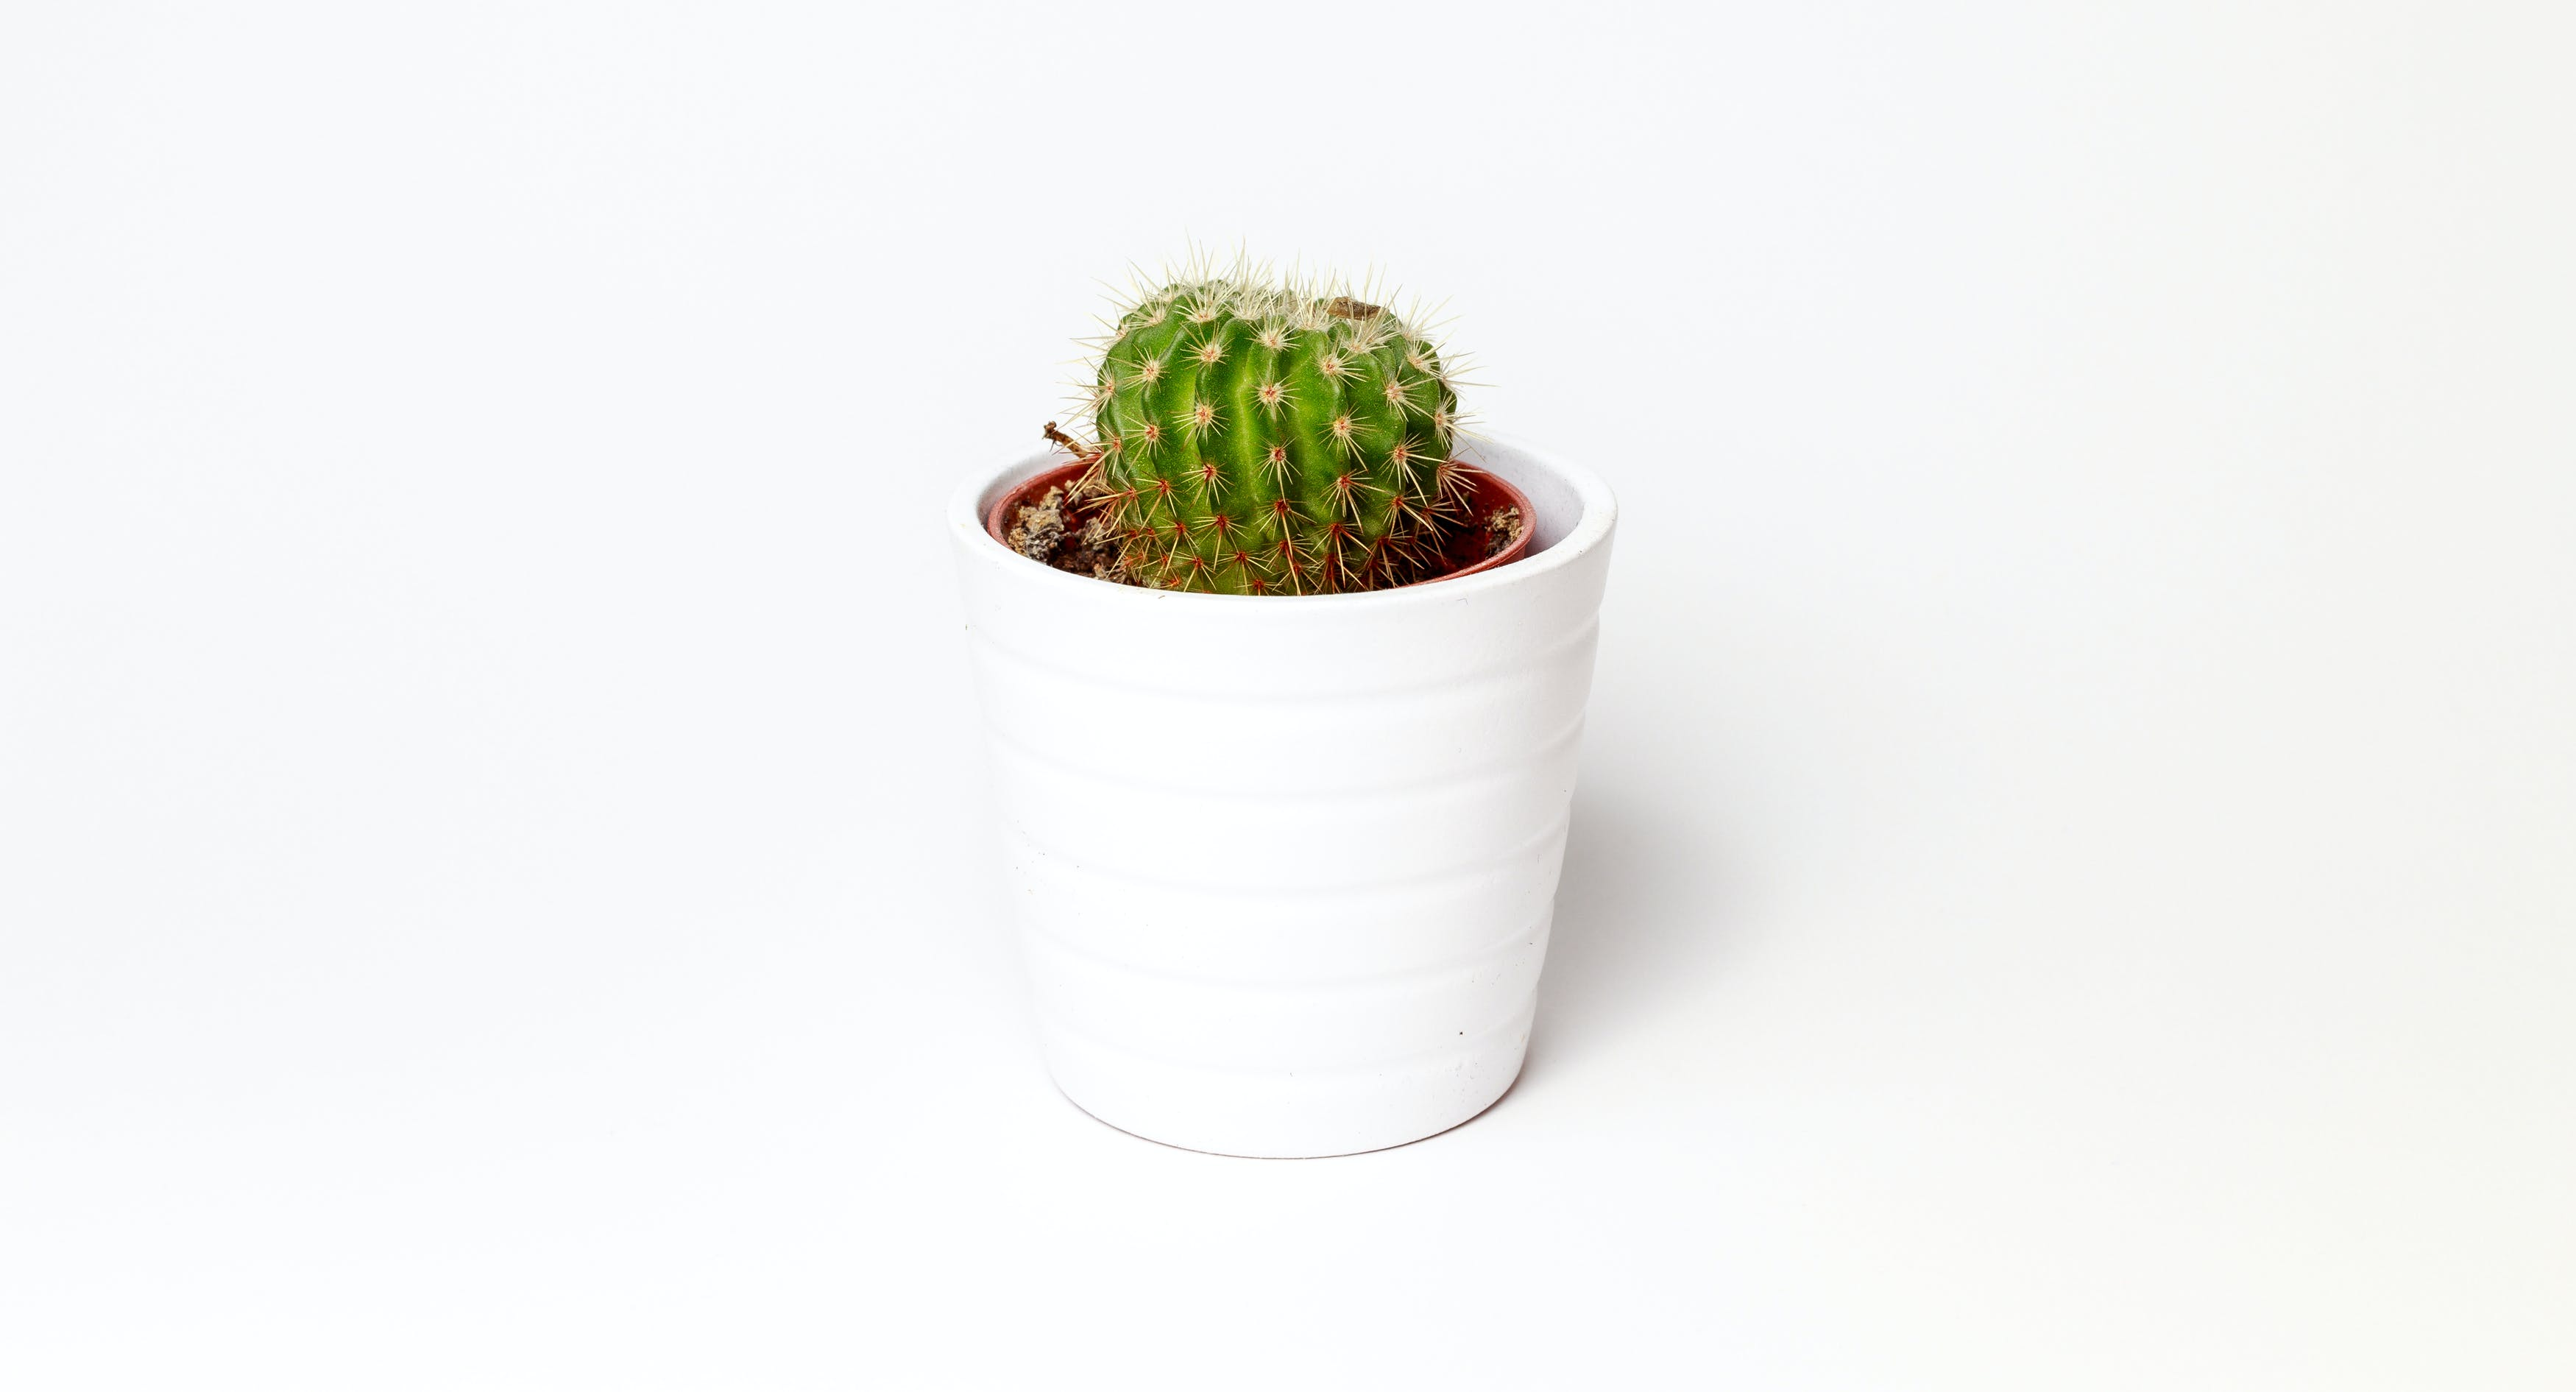 Green Cactus Potted Plant on White Ceramic Pot